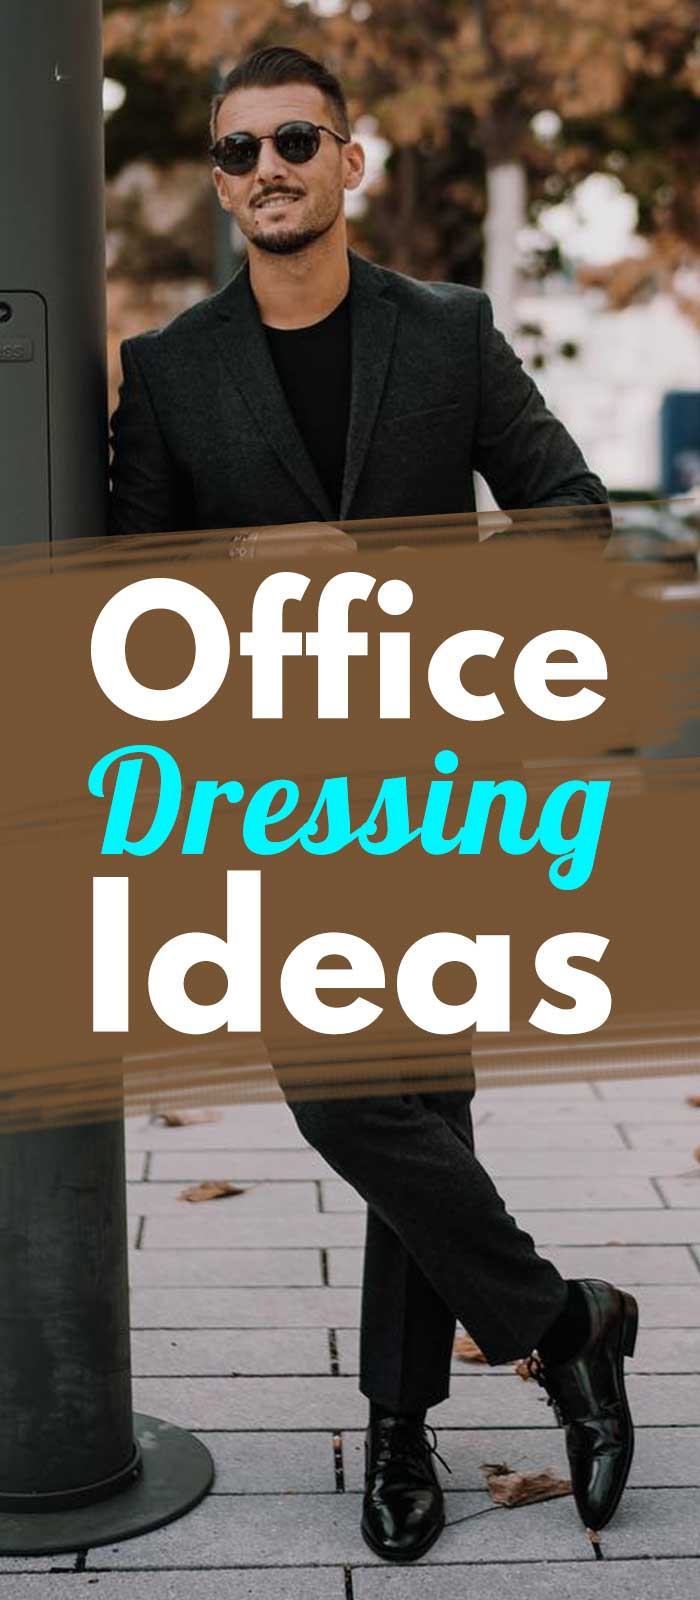 Office Dressing Ideas!